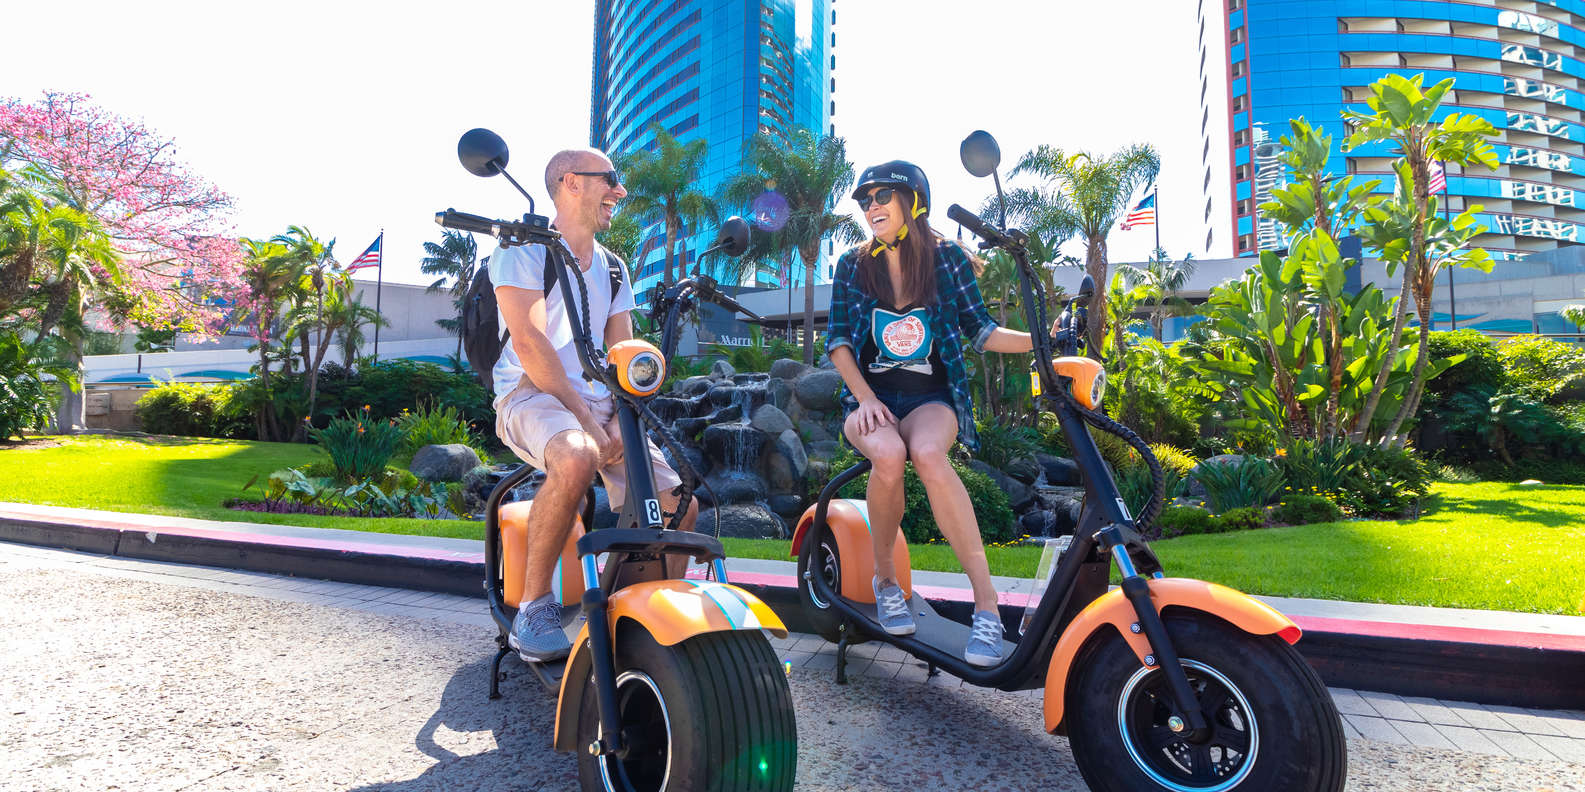 Scooter Tour around Downtown